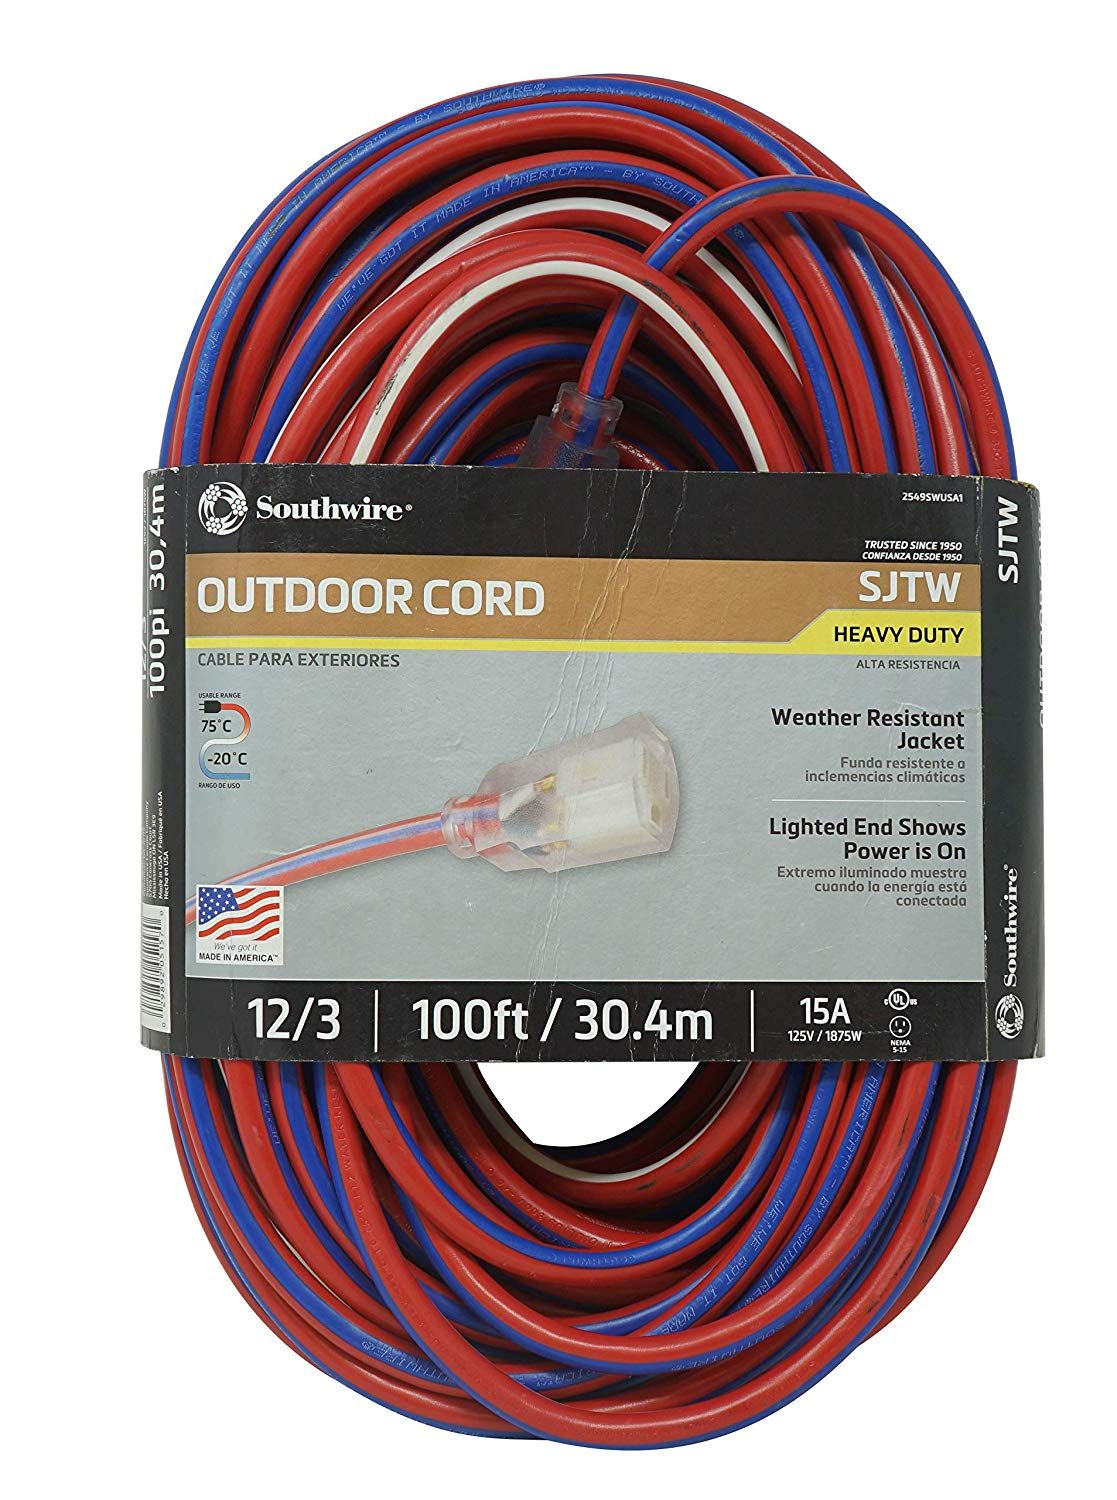 Southwire 2549swusa1 100 Feet Contractor Grade 12 3 Extension Cord With Lighted End Red White And Blue Am Outdoor Extension Cord Contractors Red And White